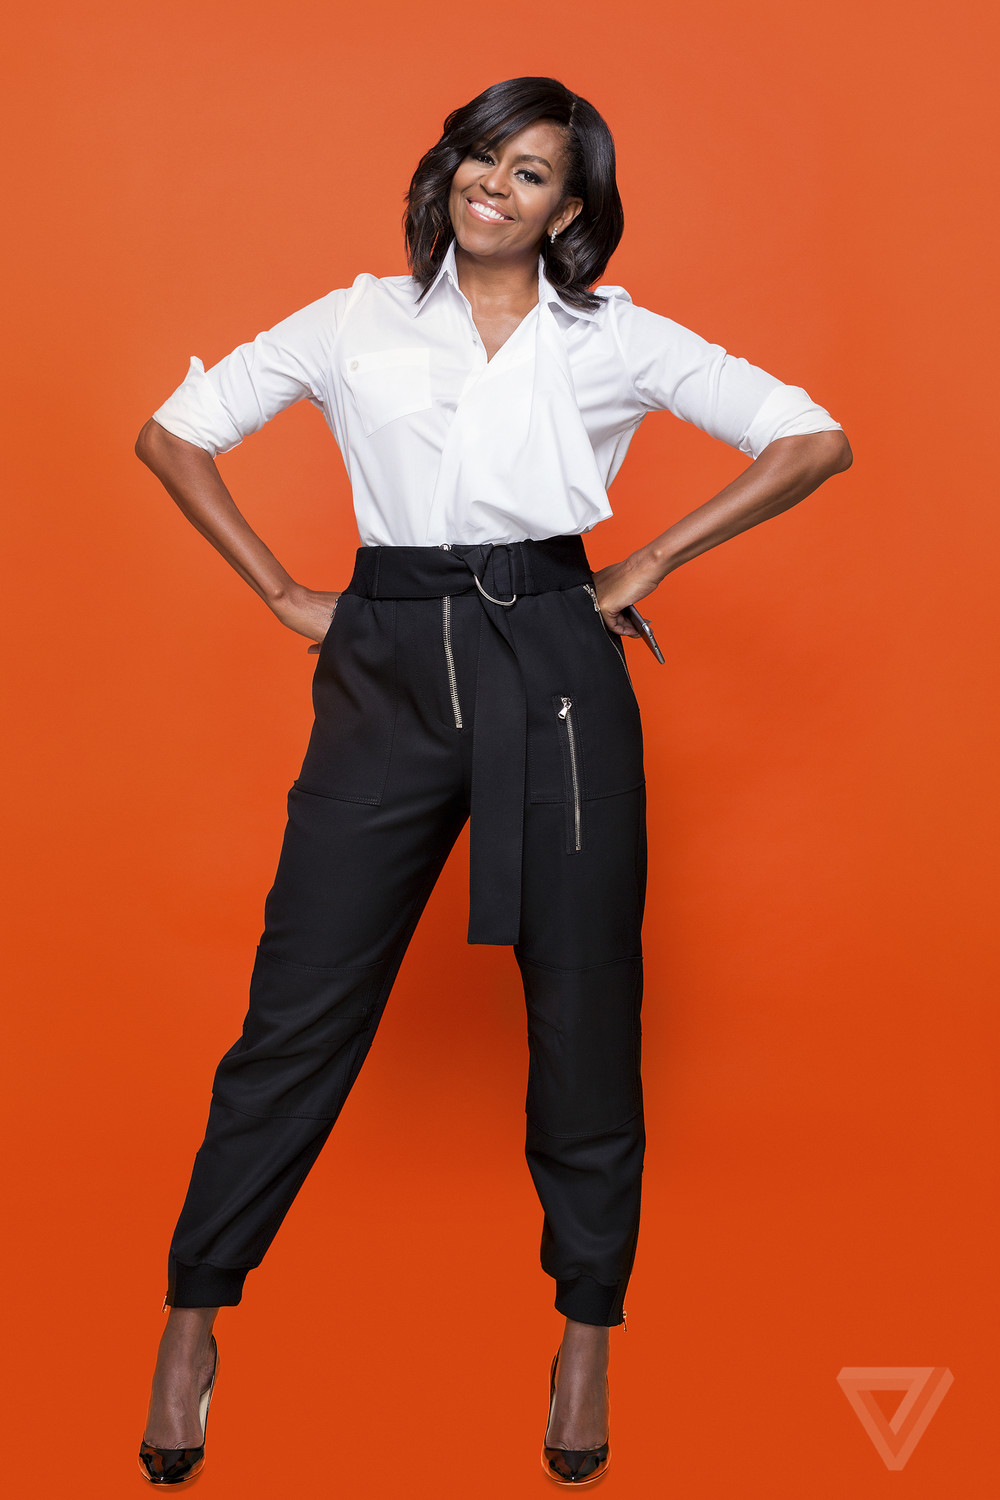 Portrait of Michelle Obama on orange background